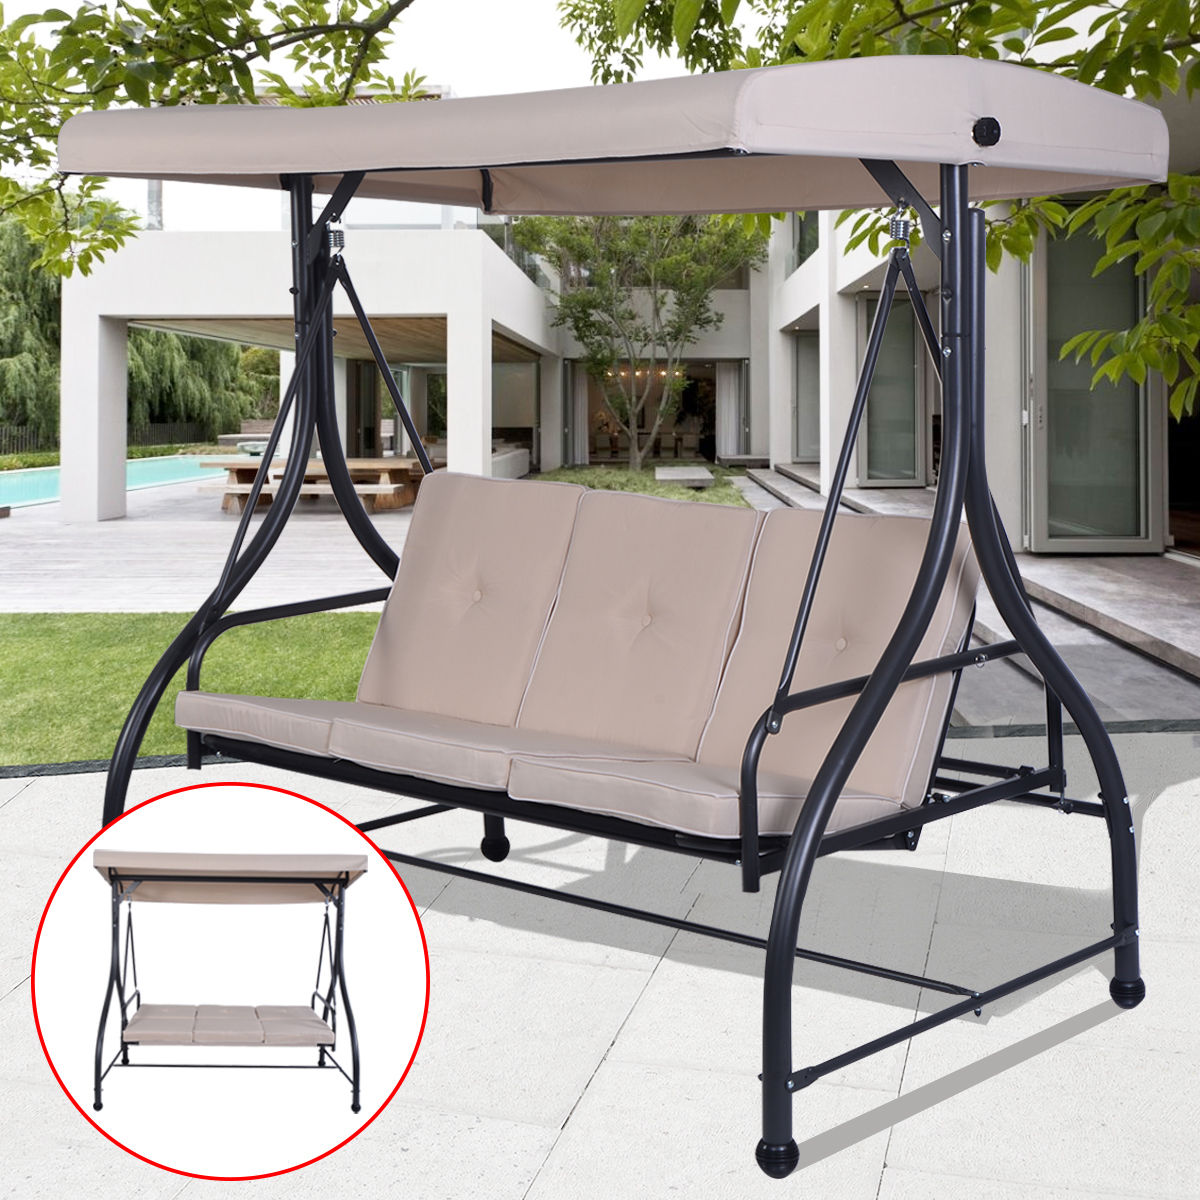 Costway Converting Outdoor Swing Canopy Hammock 3 Seats Patio Deck Furniture beige